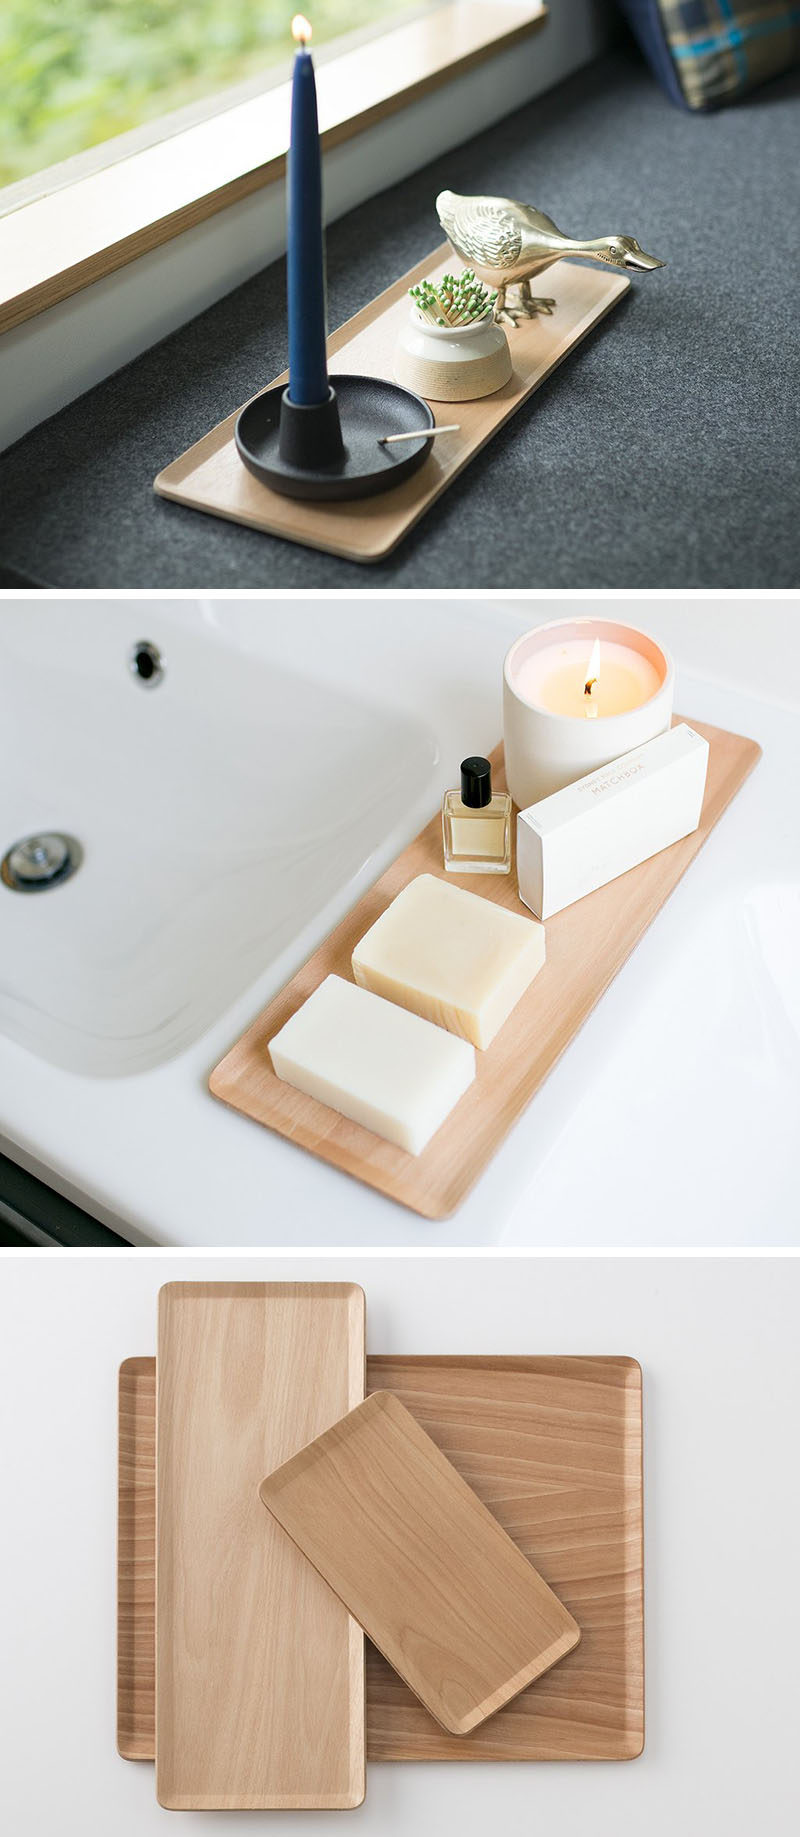 These light wood trays have slightly raised edges that makes them suitable for any environment, even in the bathroom as they prevent liquids from from spilling all over the counter.